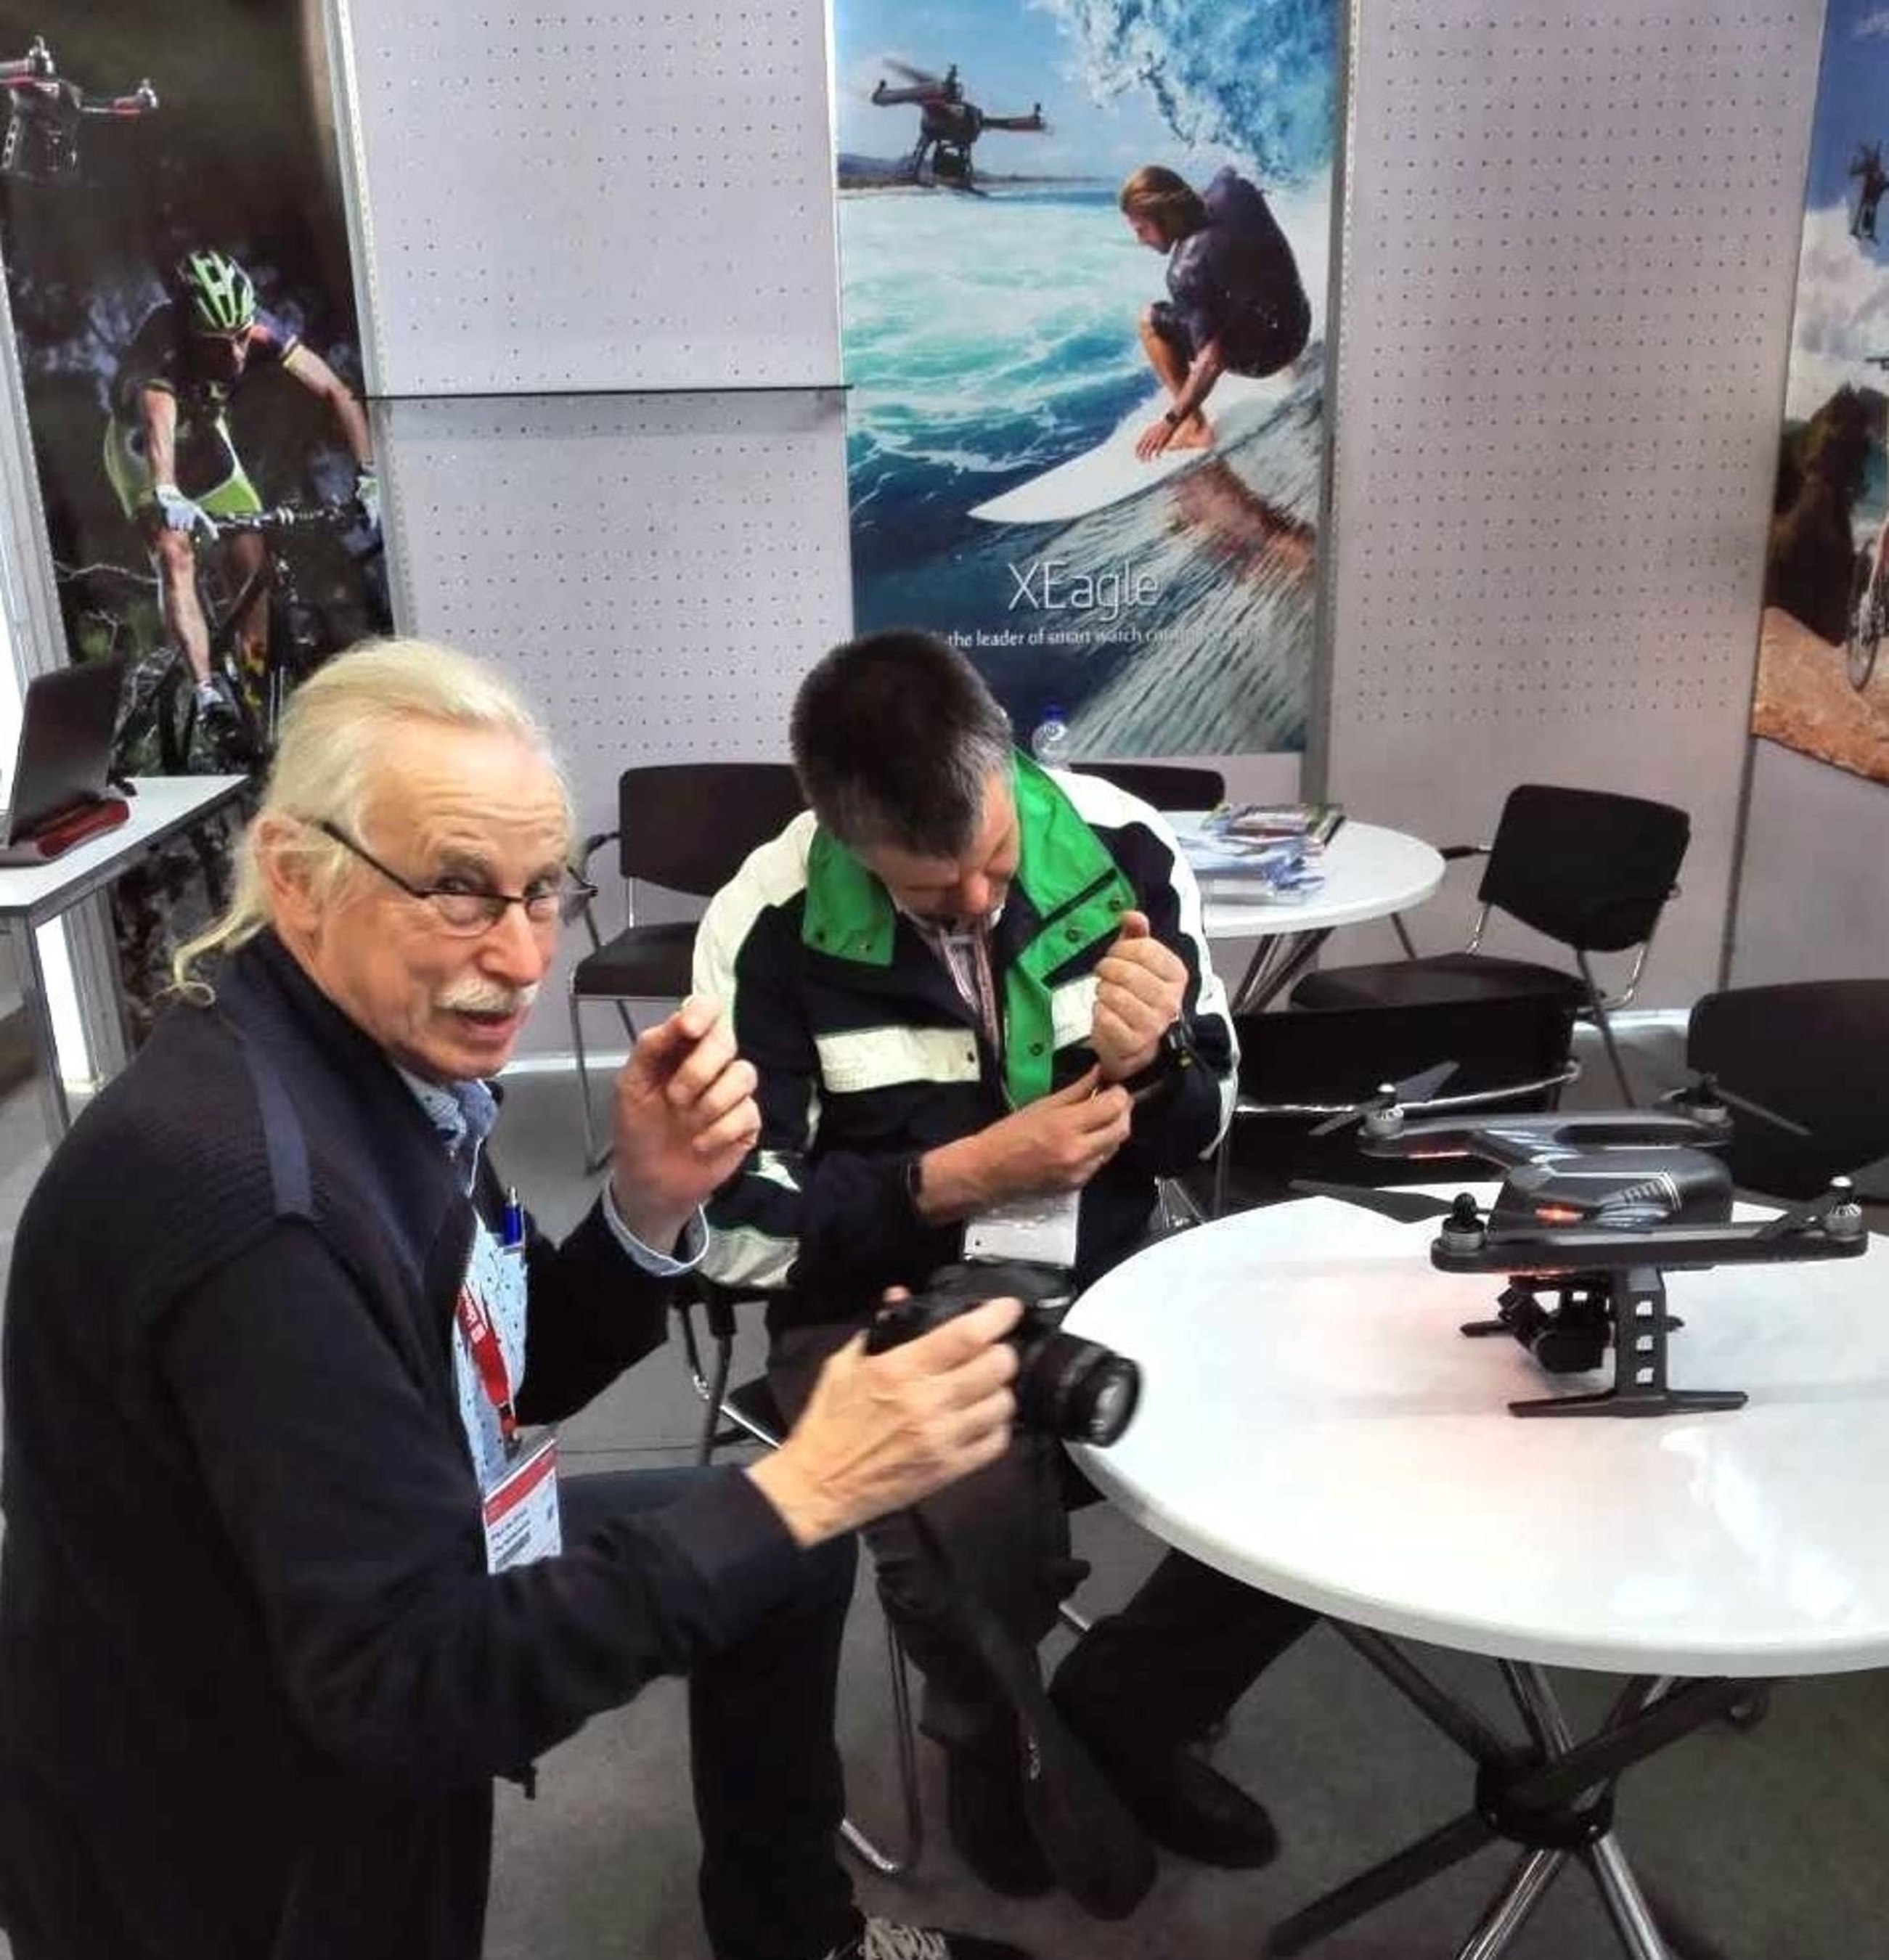 FLYPRO XEagle UAV controlled by mouth Delights Crowds at the Nuremberg Toy Fair